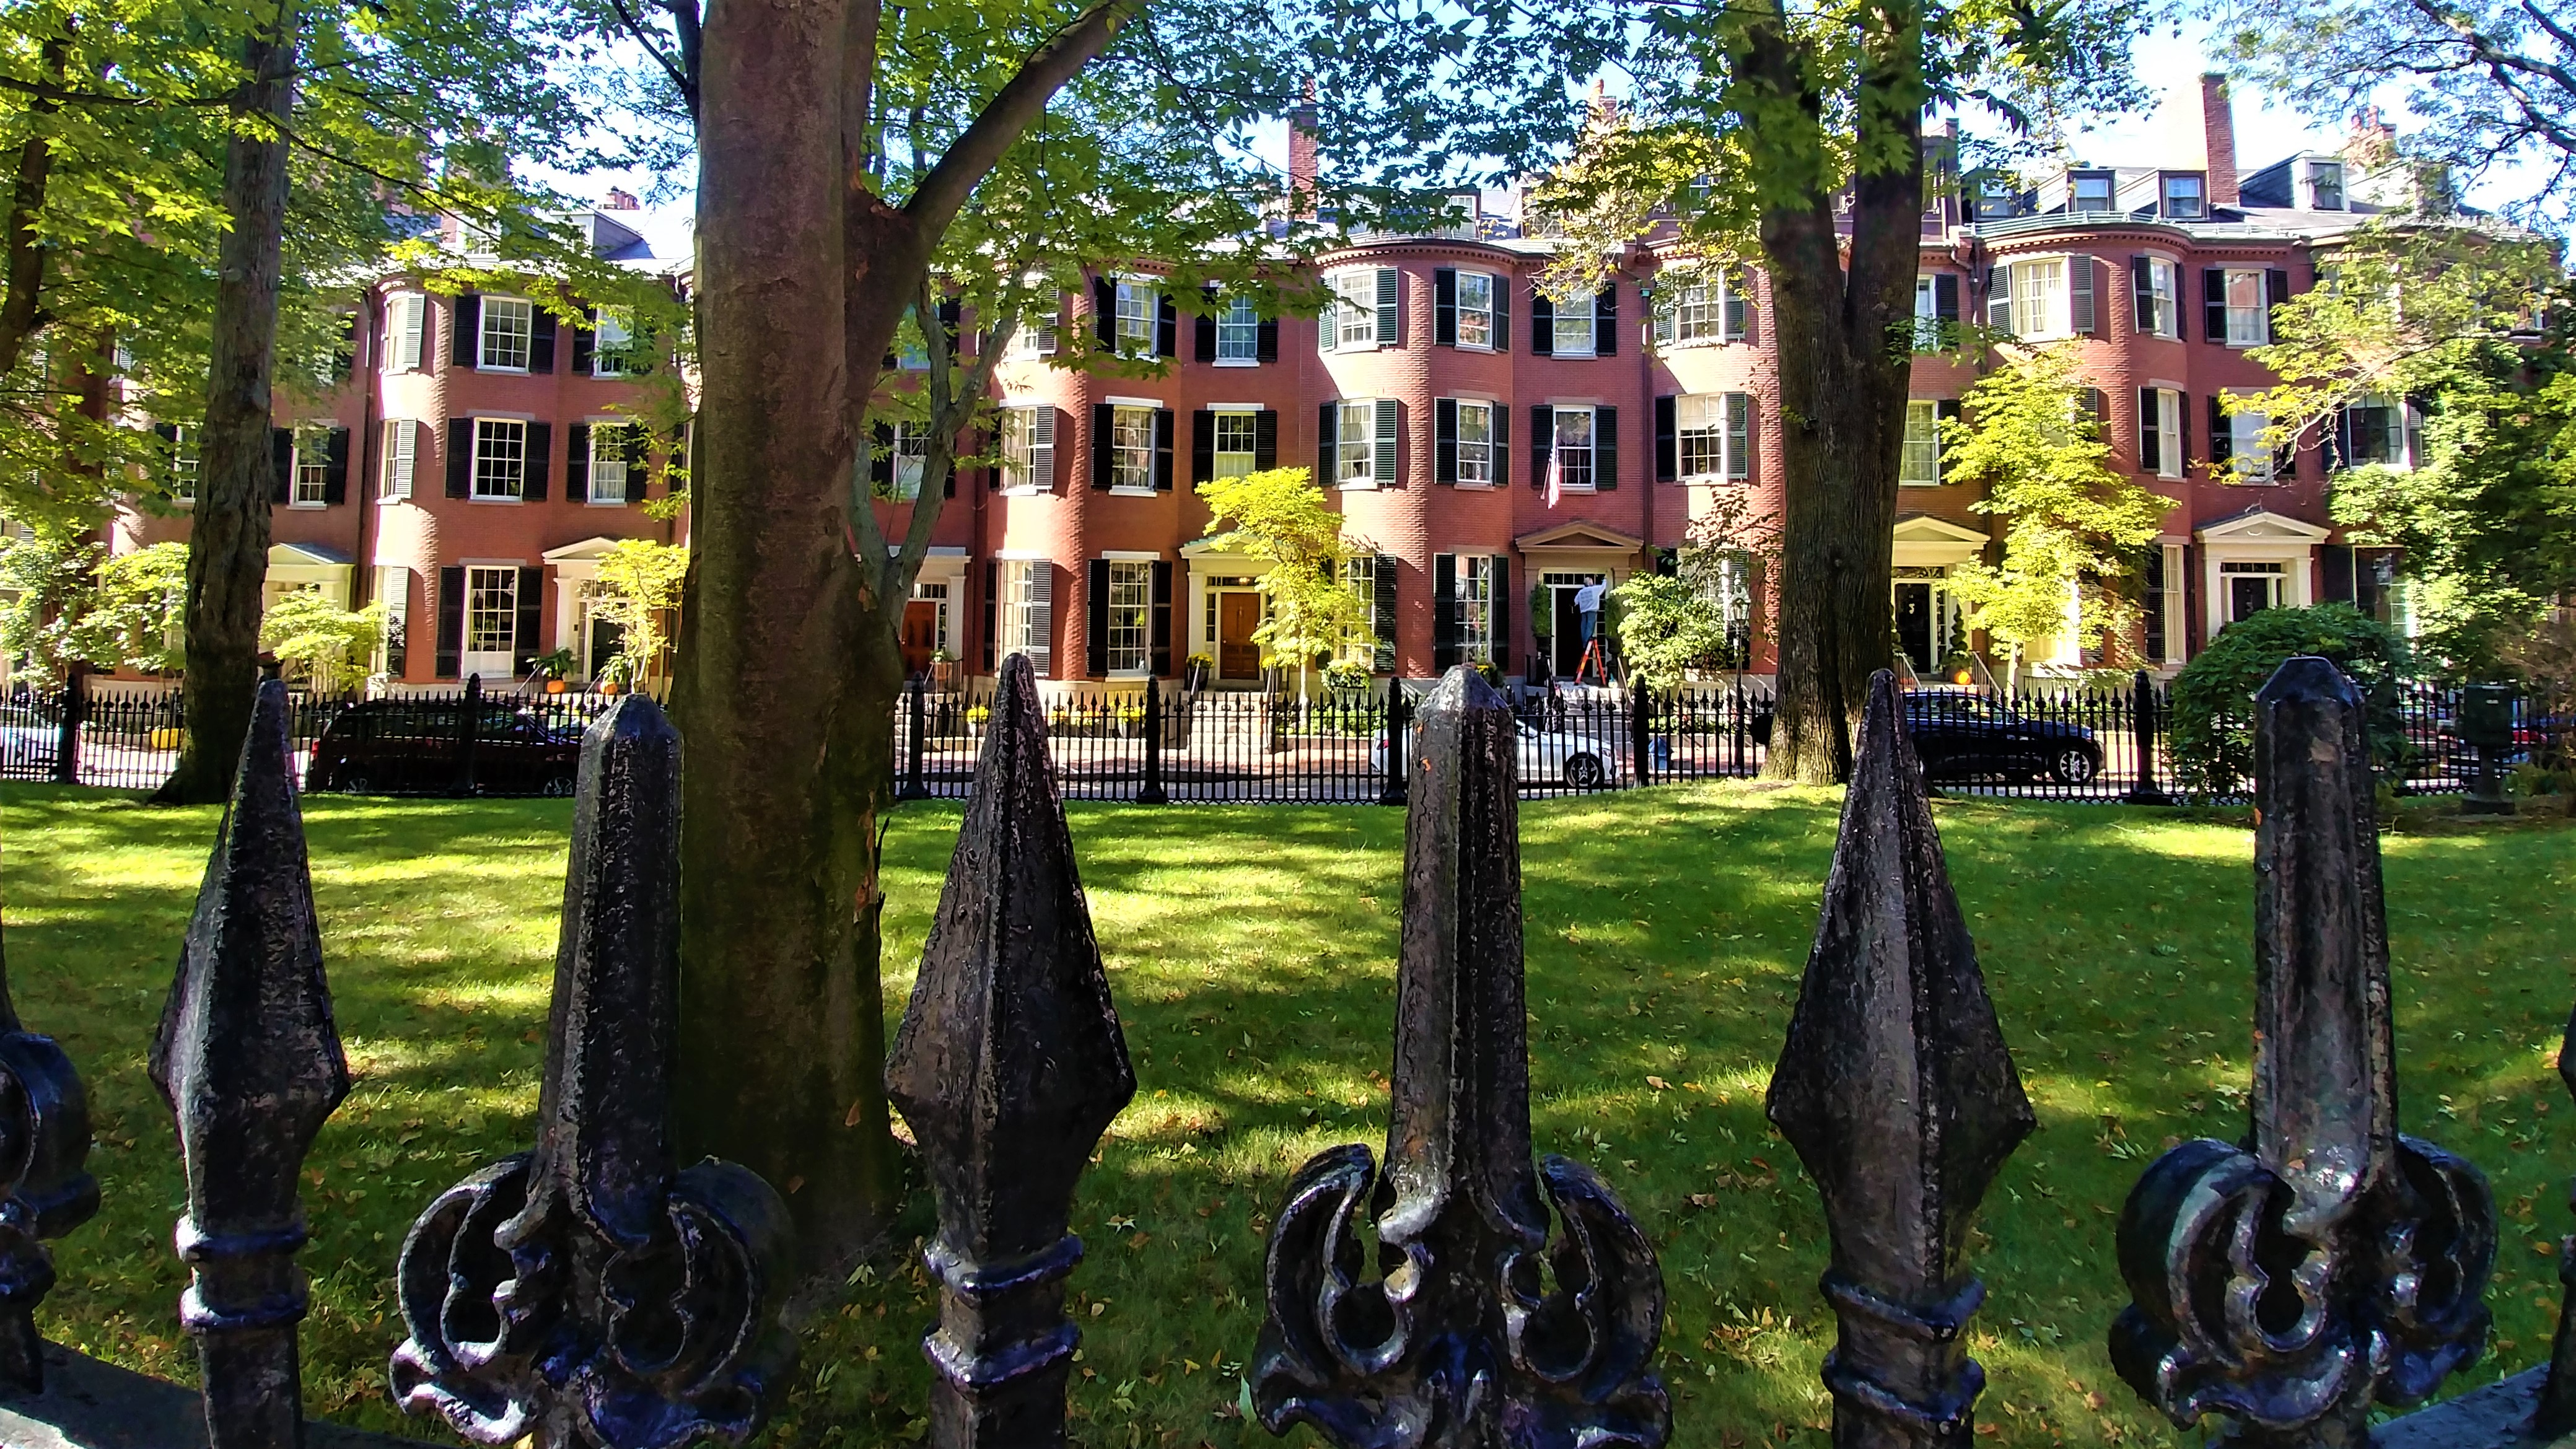 Beacon Hill Automne Halloween Boston Road Trip Blog Voyage Arpenter Le Chemin